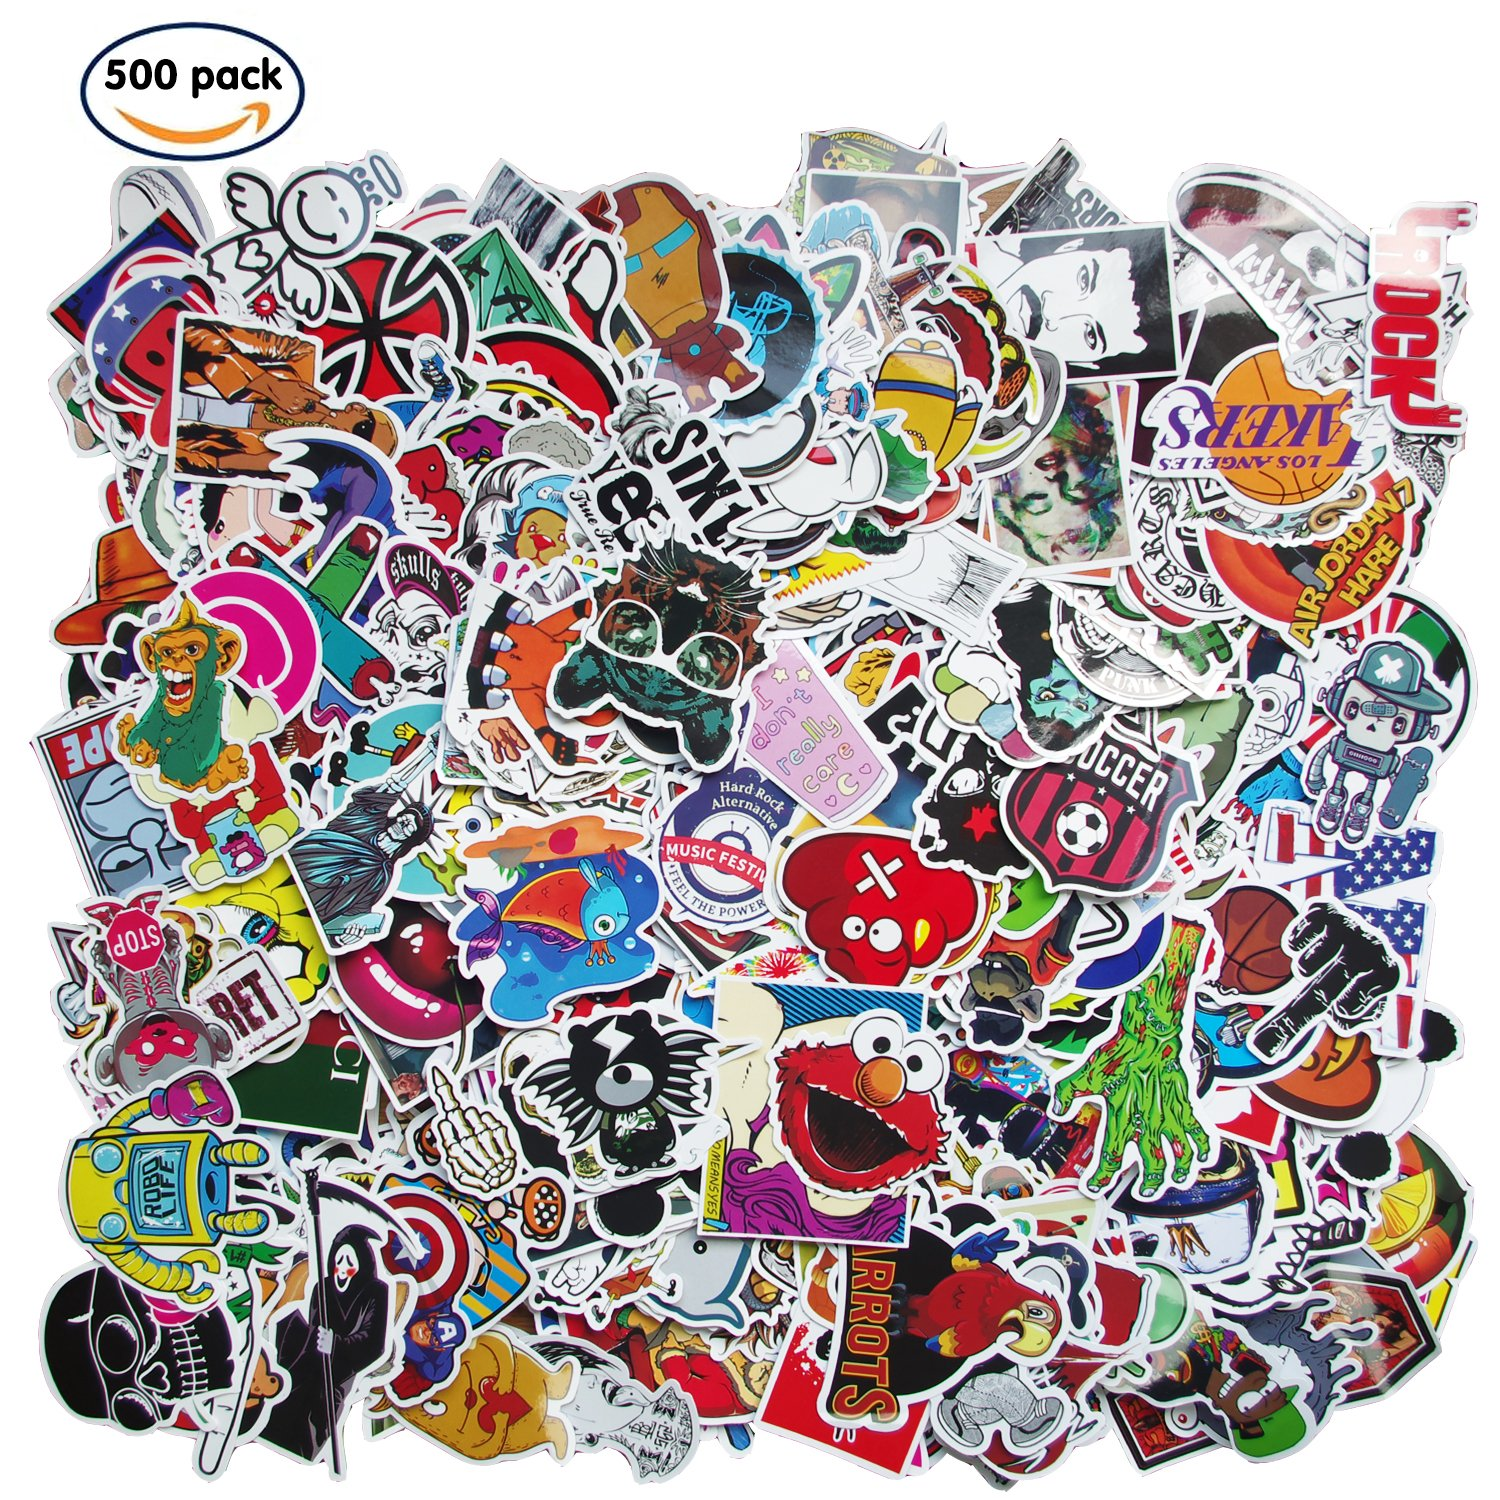 Future Stickers 500 pcs, Laptop Stickers Car Motorcycle Bicycle Luggage Decal Graffiti Patches Skateboard Stickers for Laptop - No-Duplicate Sticker Pack (500pcs)